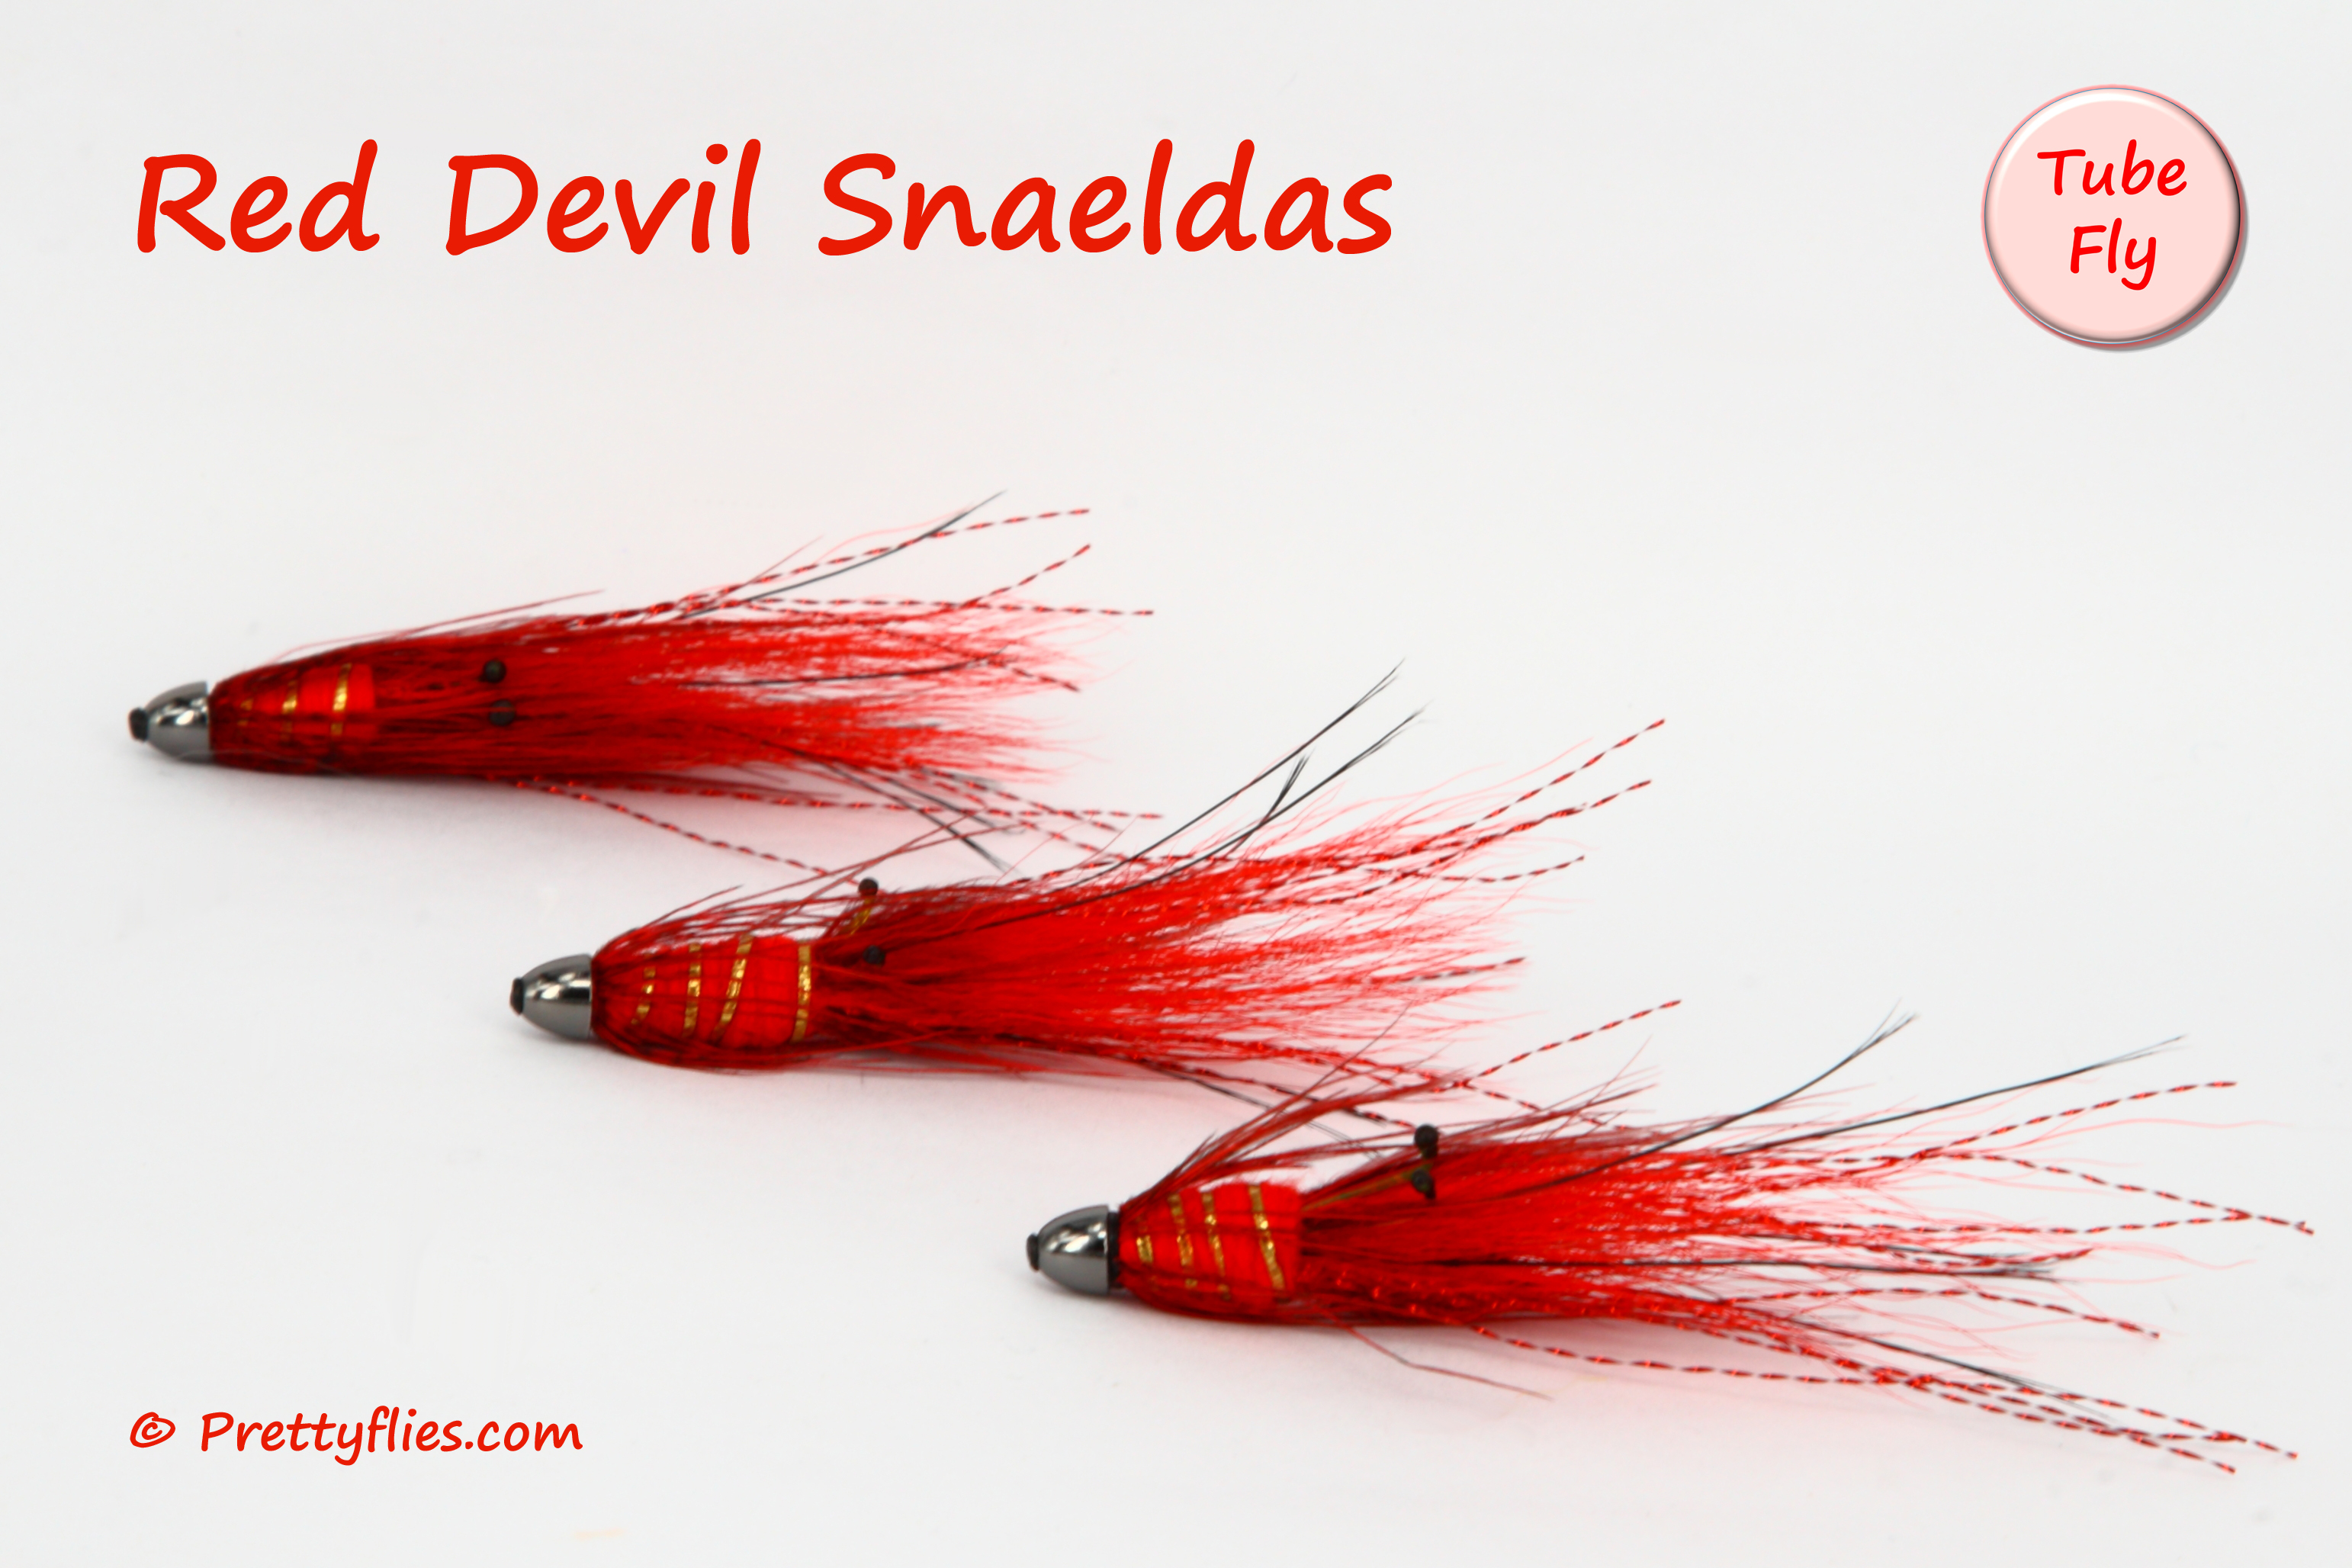 Red Devil Snaeldas copy.jpg